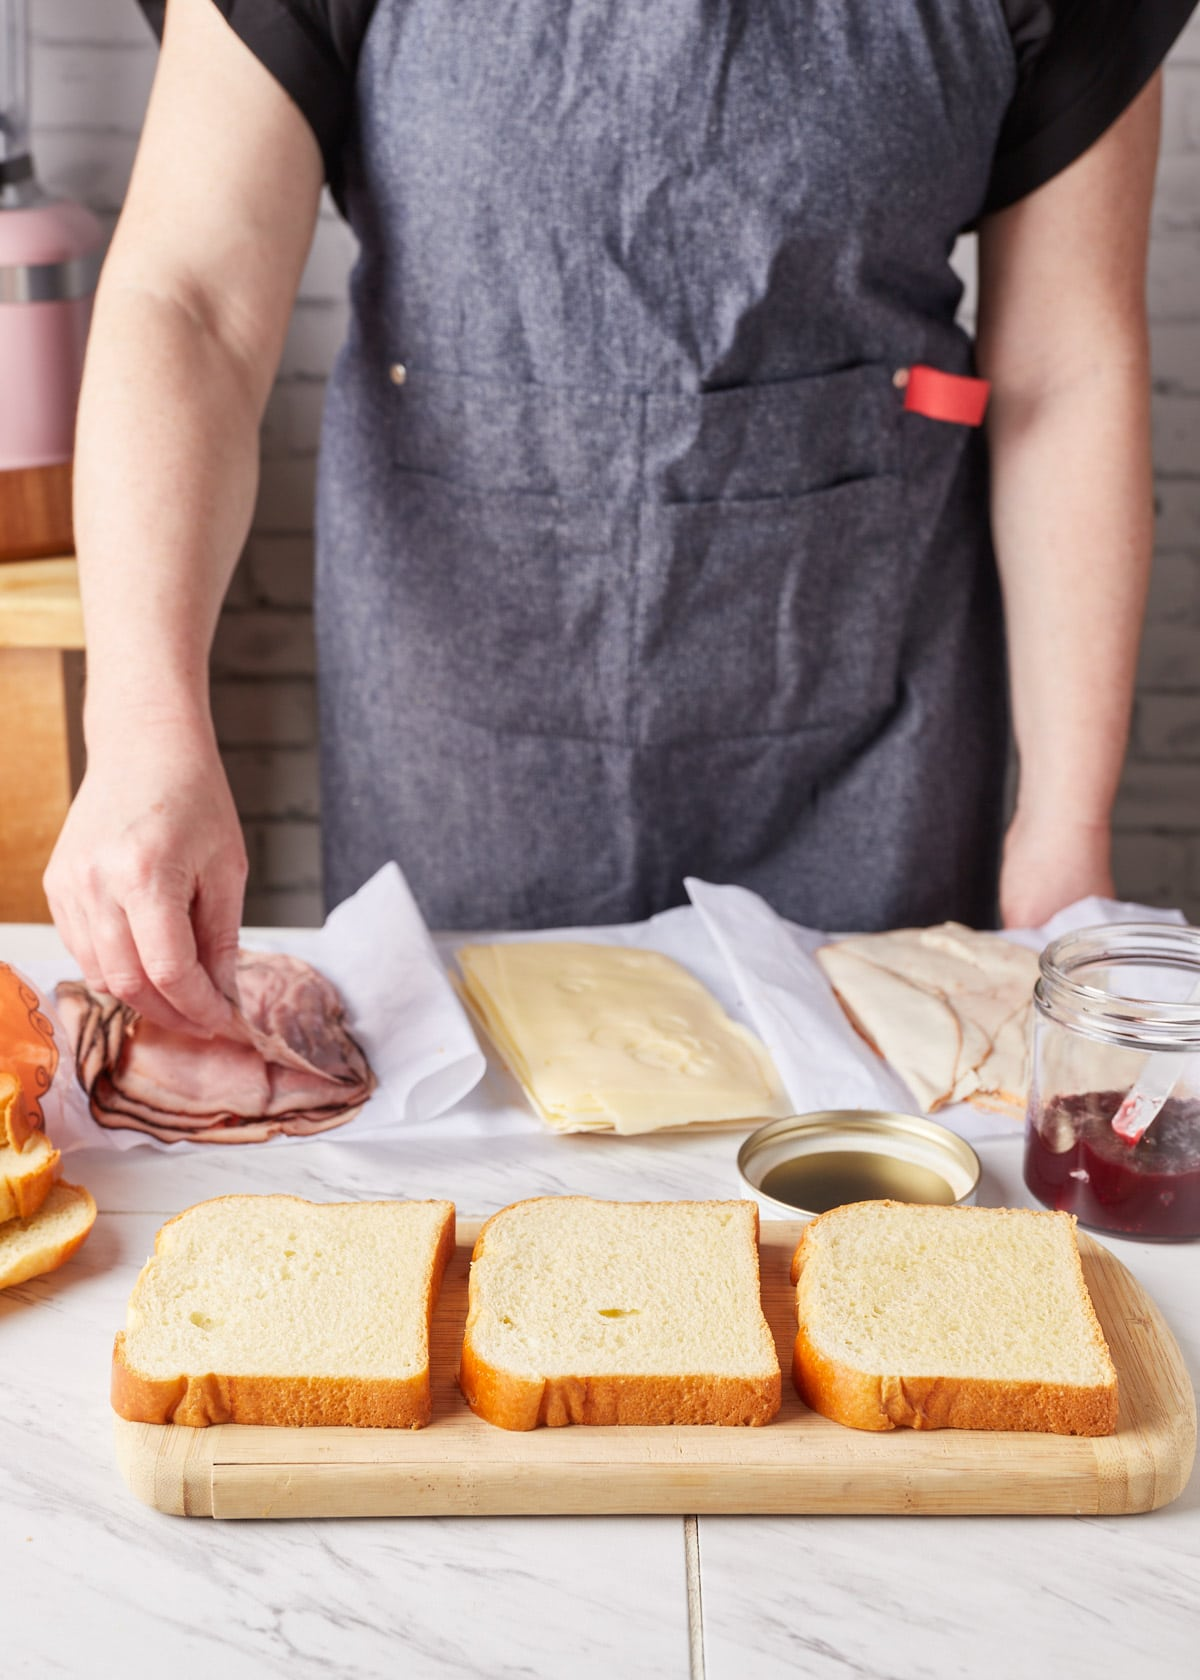 three slices of bread on a wood cutting board, in front of piles of deli meat and cheese, and a woman in an apron in the background picking up a slice of ham